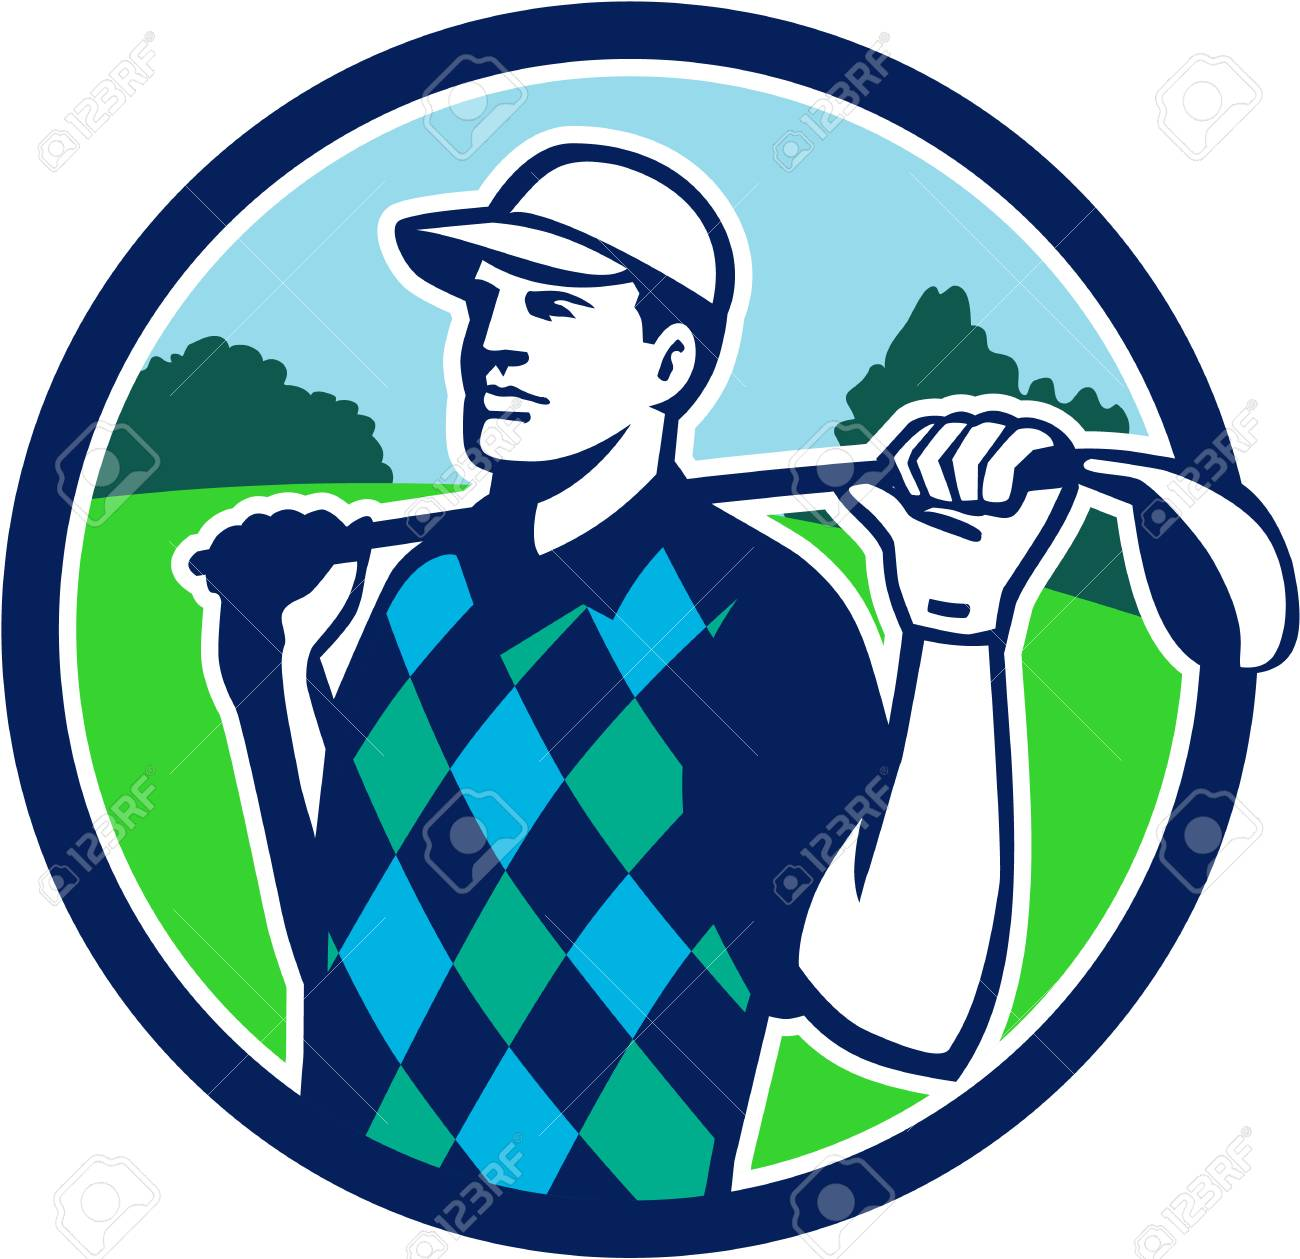 Illustration of golfer wearing argyle vest and hat holding golf club on  shoulder looking to the 079ed1716d7